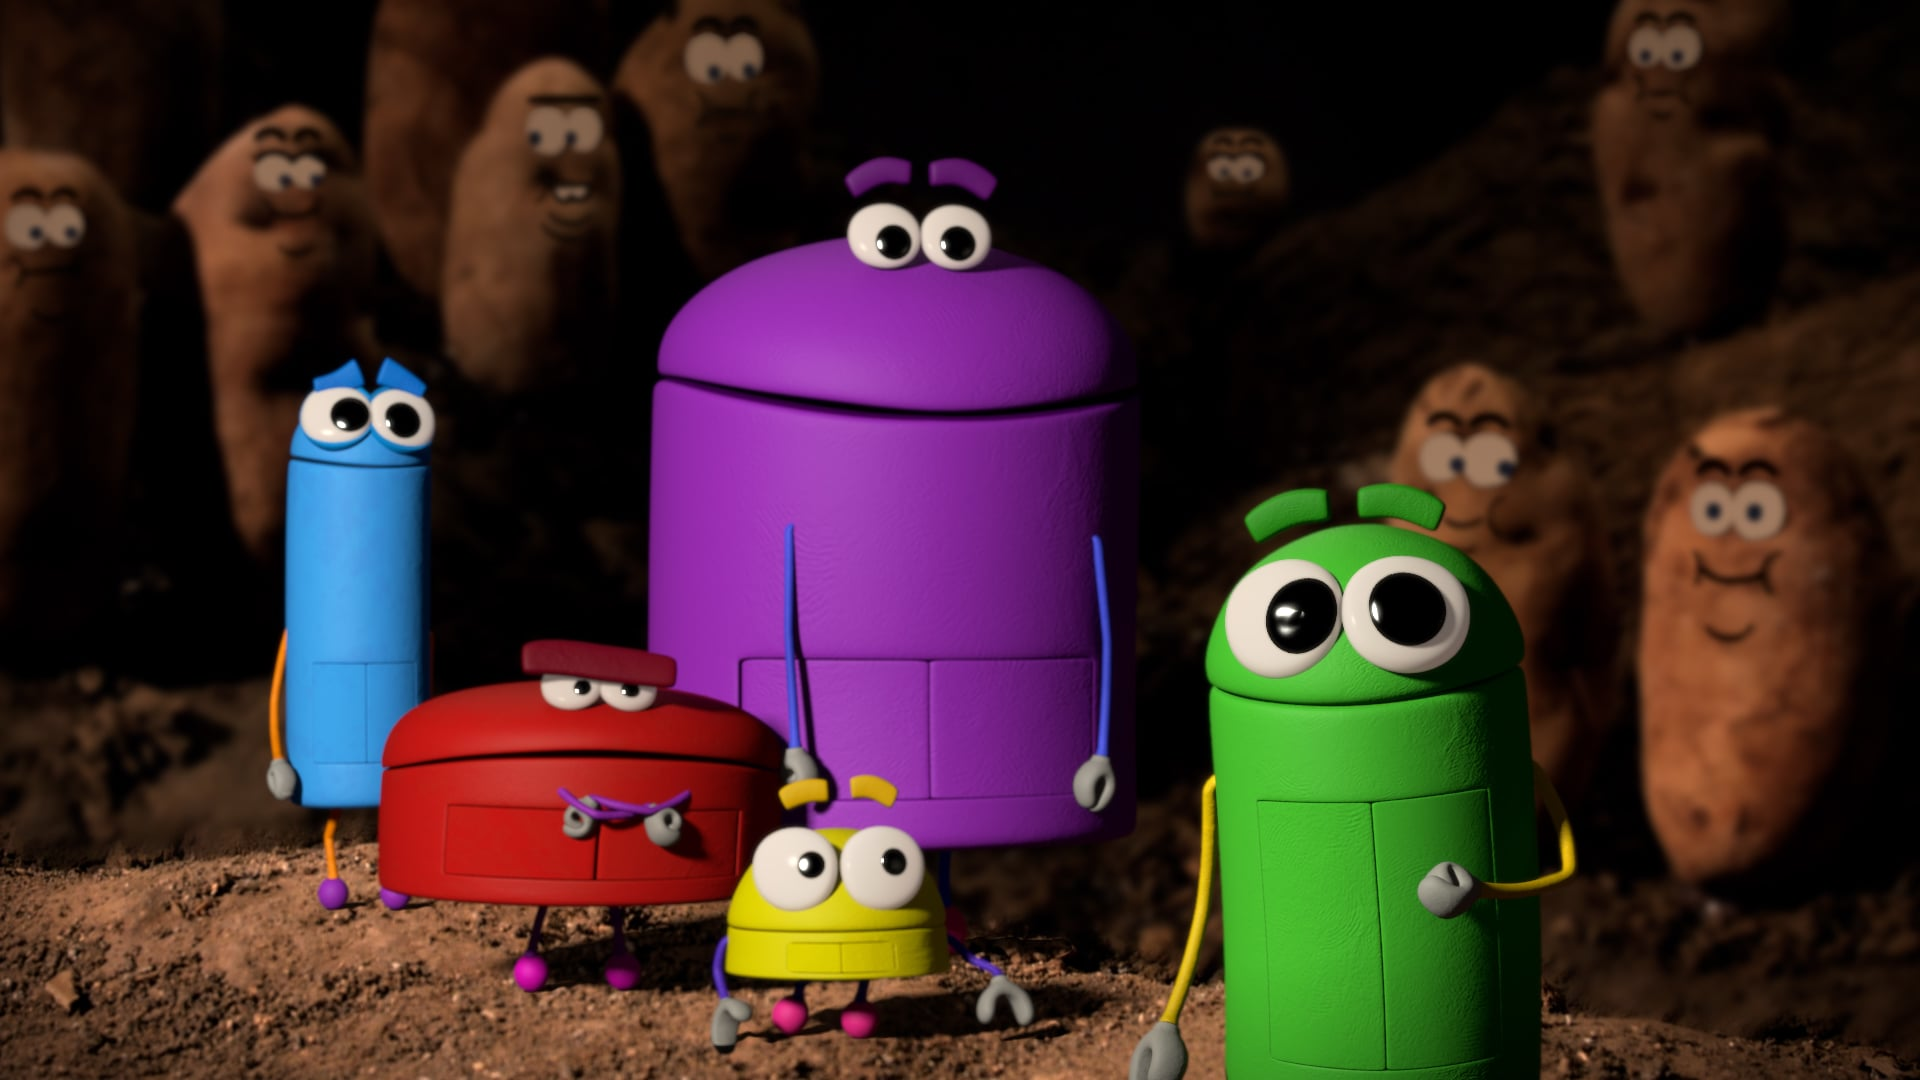 ASK THE STORYBOTS, (from left): Bang (voiced by Fred Tatasciore), Boop (voiced by Gregg Spiridellis), Bo (voiced by Erin Fitzgerald), Bing (voiced by Jeff Gill), Beep (voiced by Judy Greer), 'Where Do French Fries Come From?', (Season 1, ep. 105, aired Aug. 12, 2016). photo: Netflix / Courtesy: Everett Collection